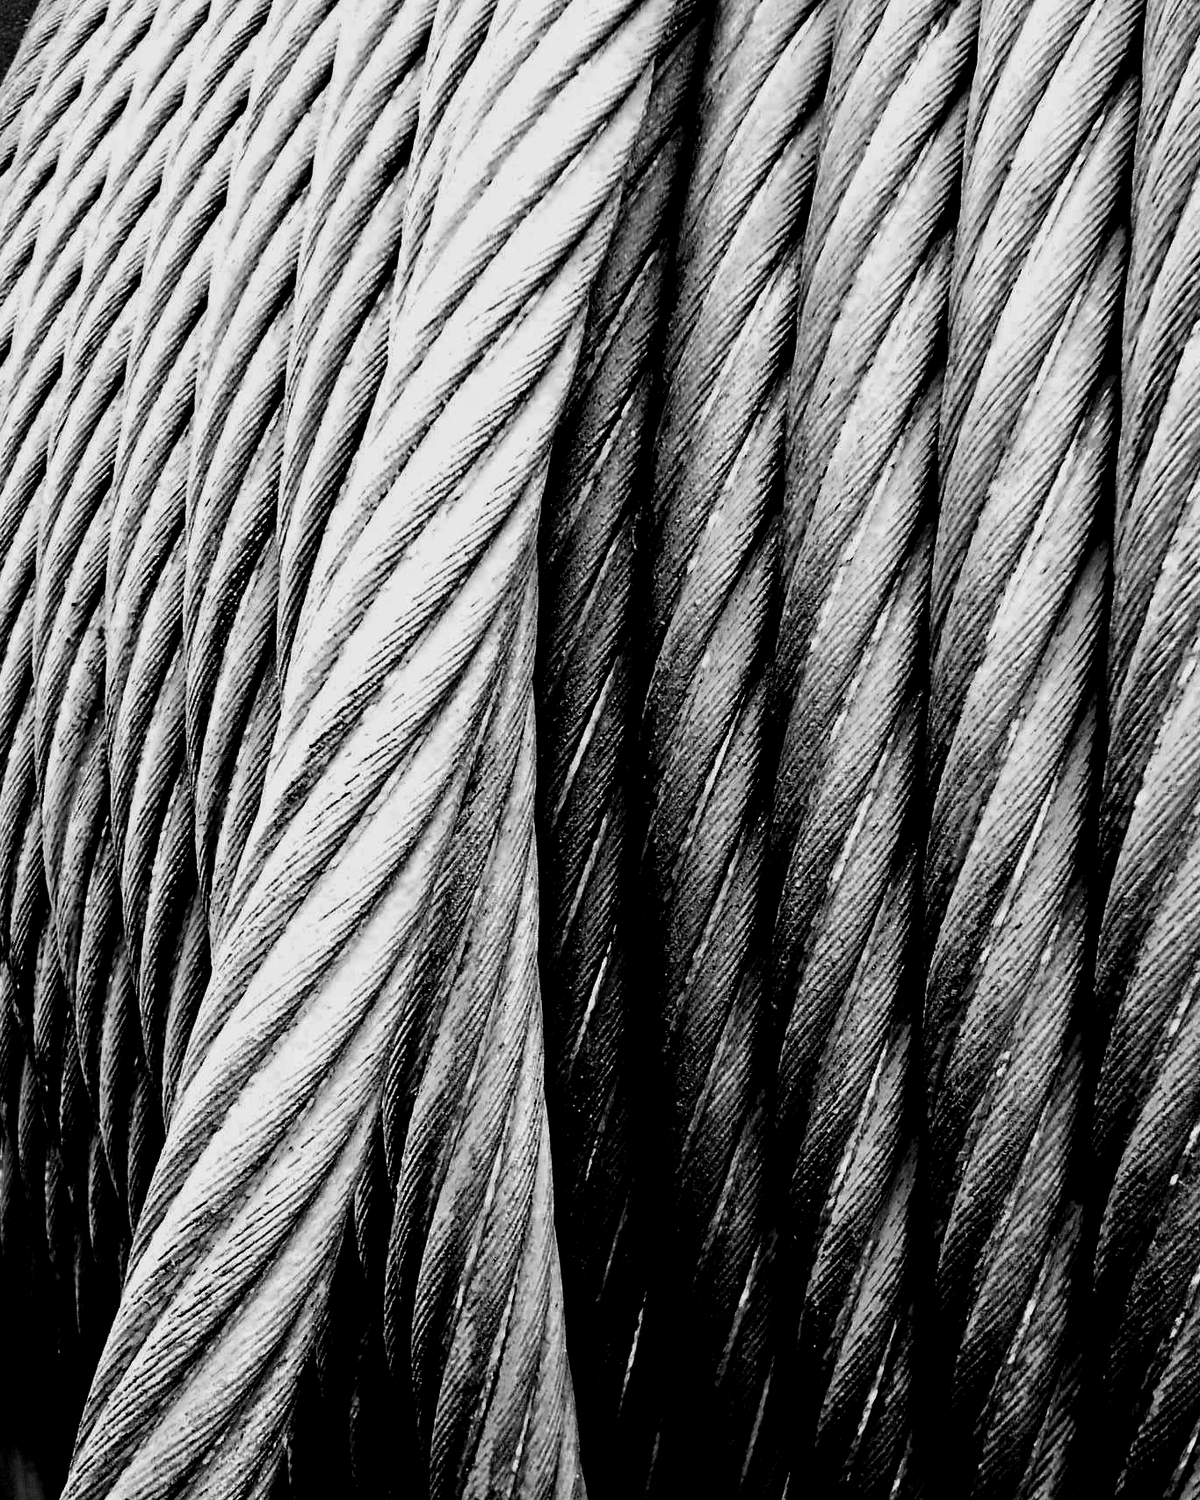 Wire Rope Wikipedia Wiring Harness Meaning In Tamil